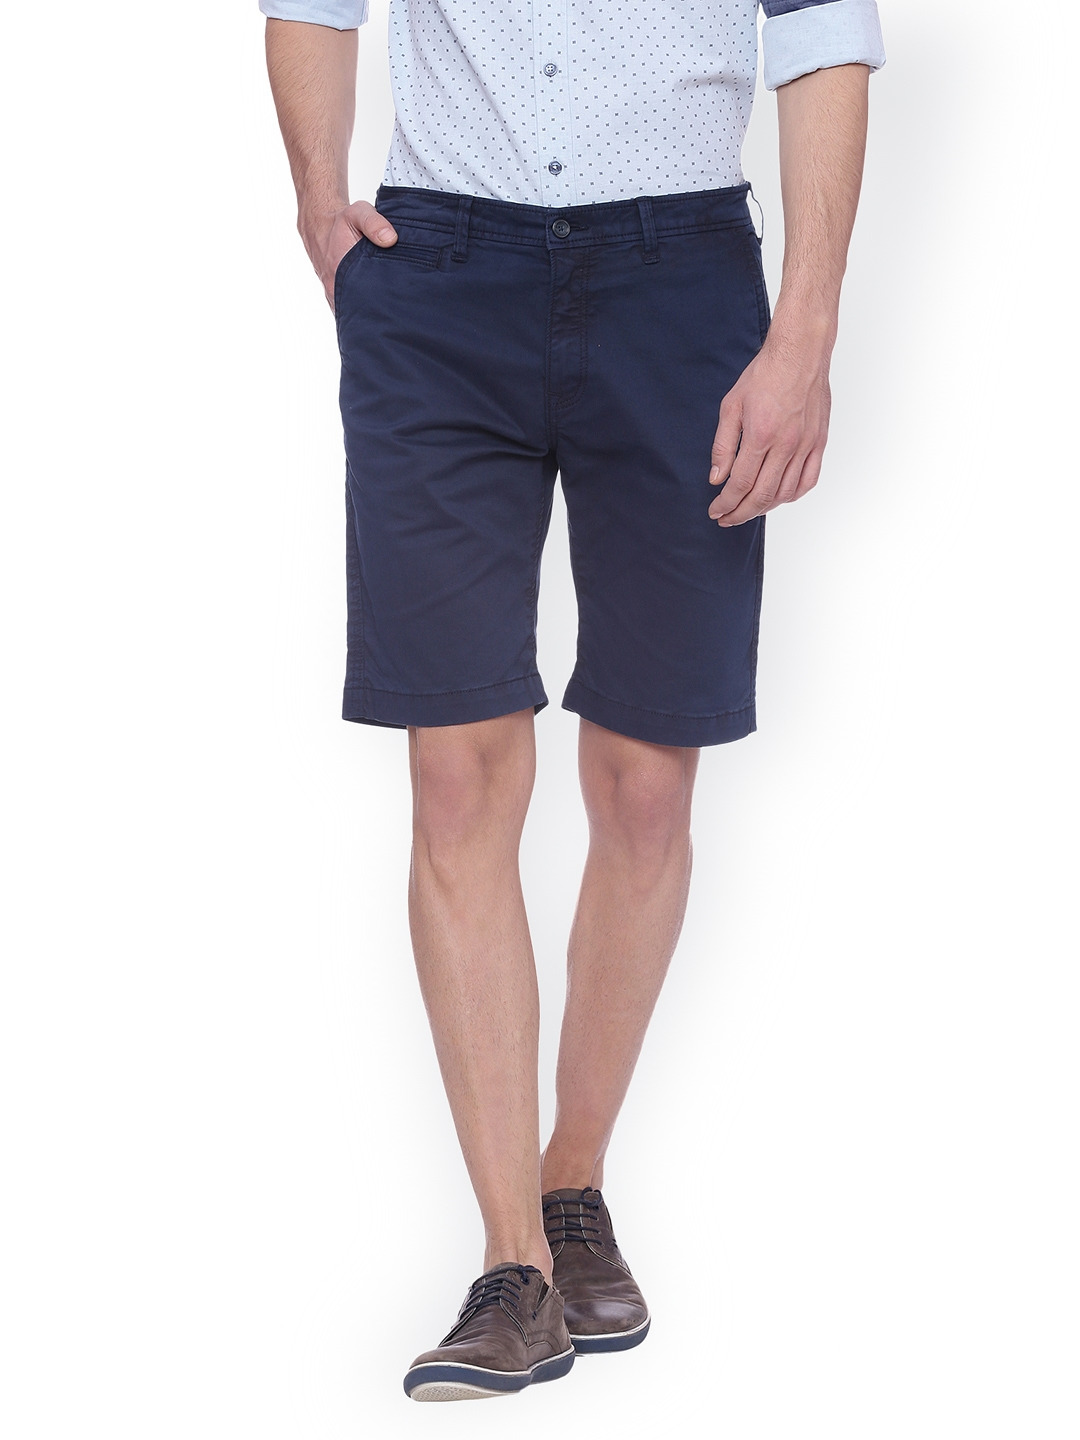 Basics Men Navy Blue Solid Regular Fit Regular Shorts